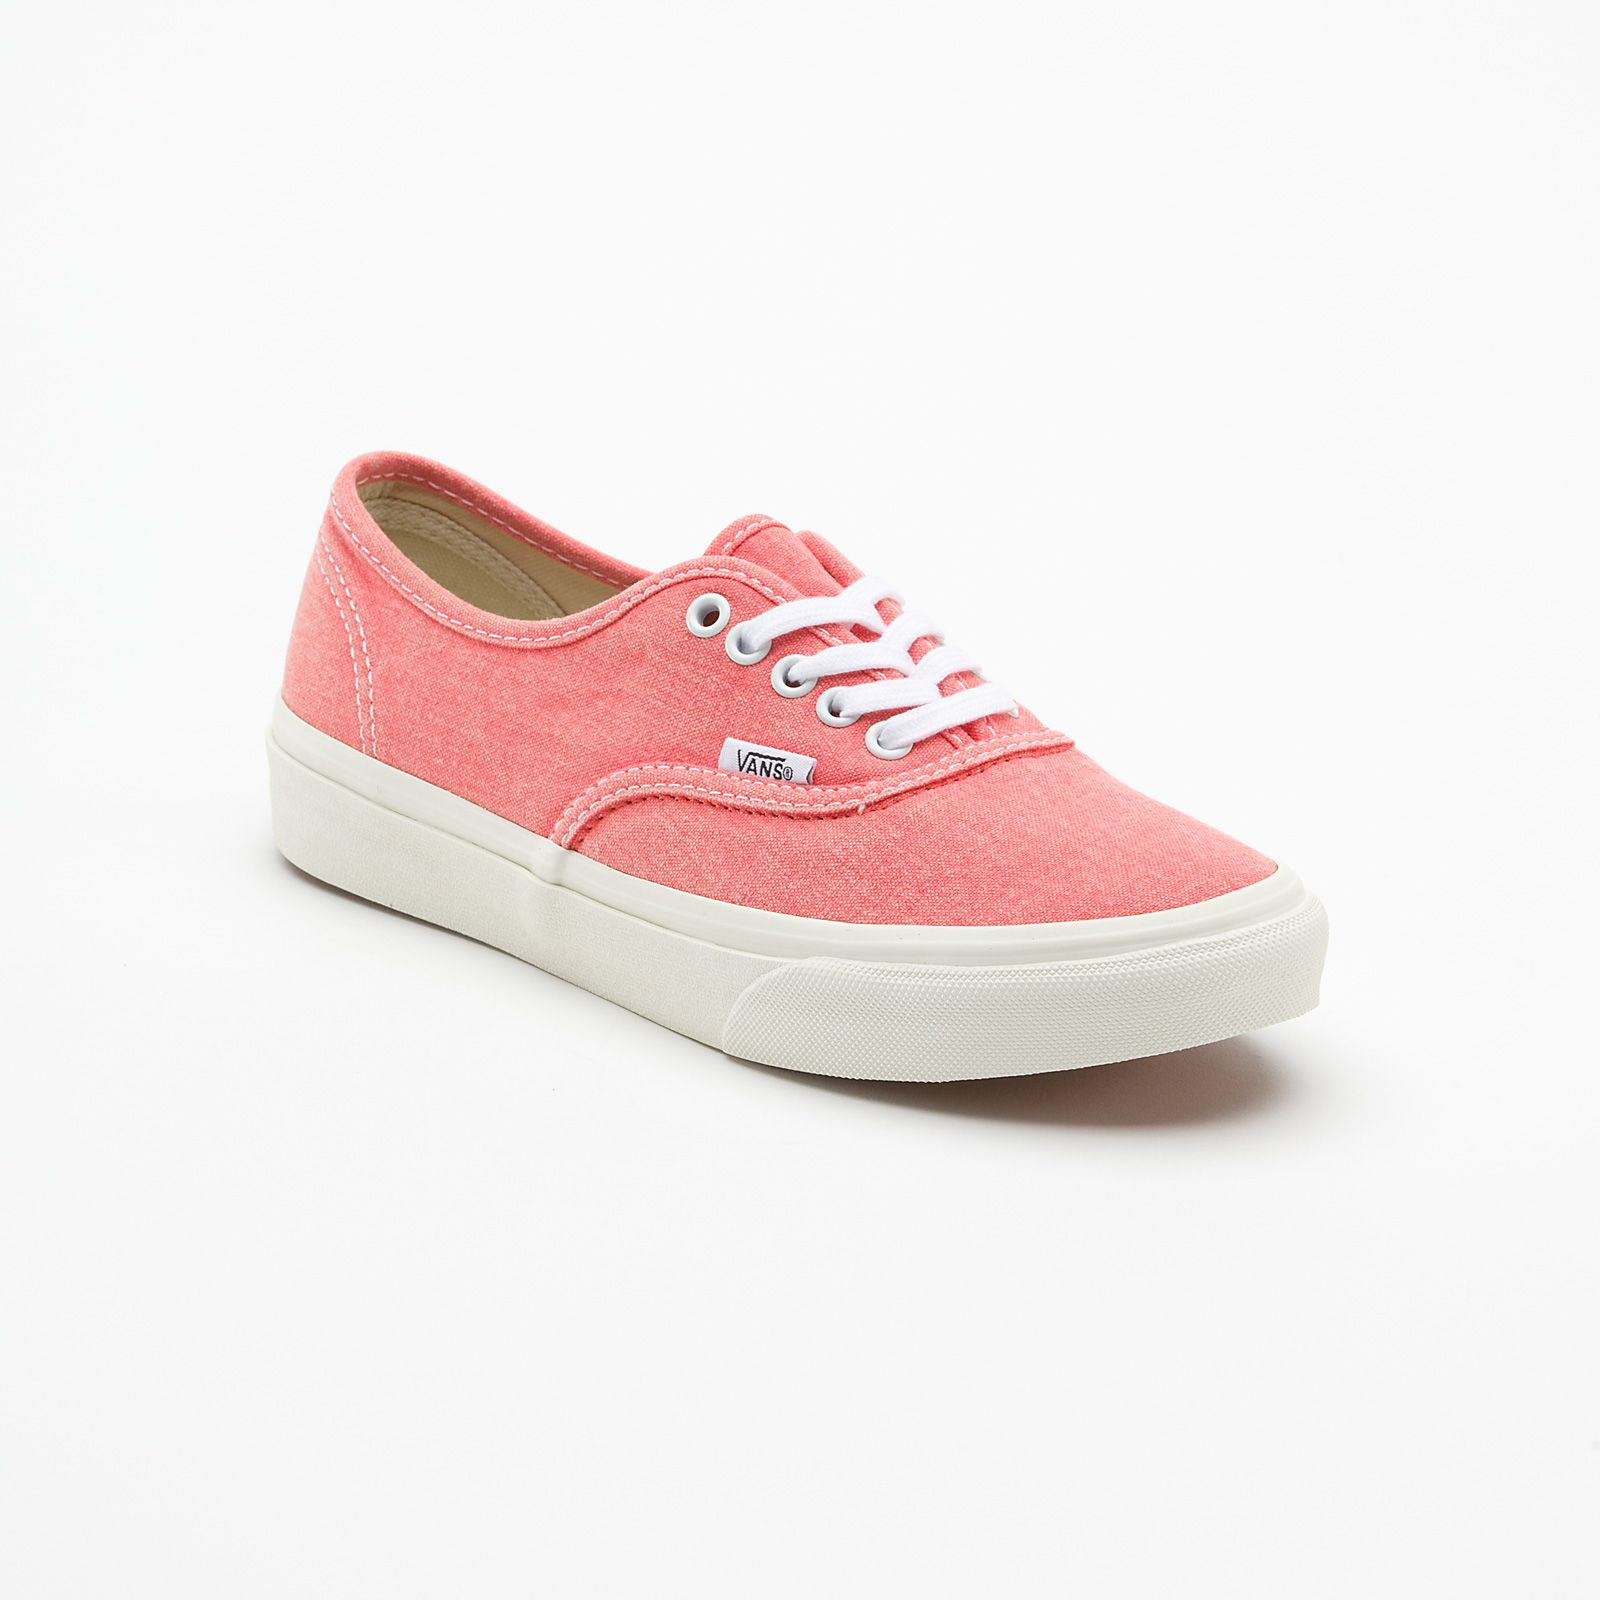 29f75e5836 Product  Washed Authentic Slim. Product  Washed Authentic Slim Plain White  Shoes